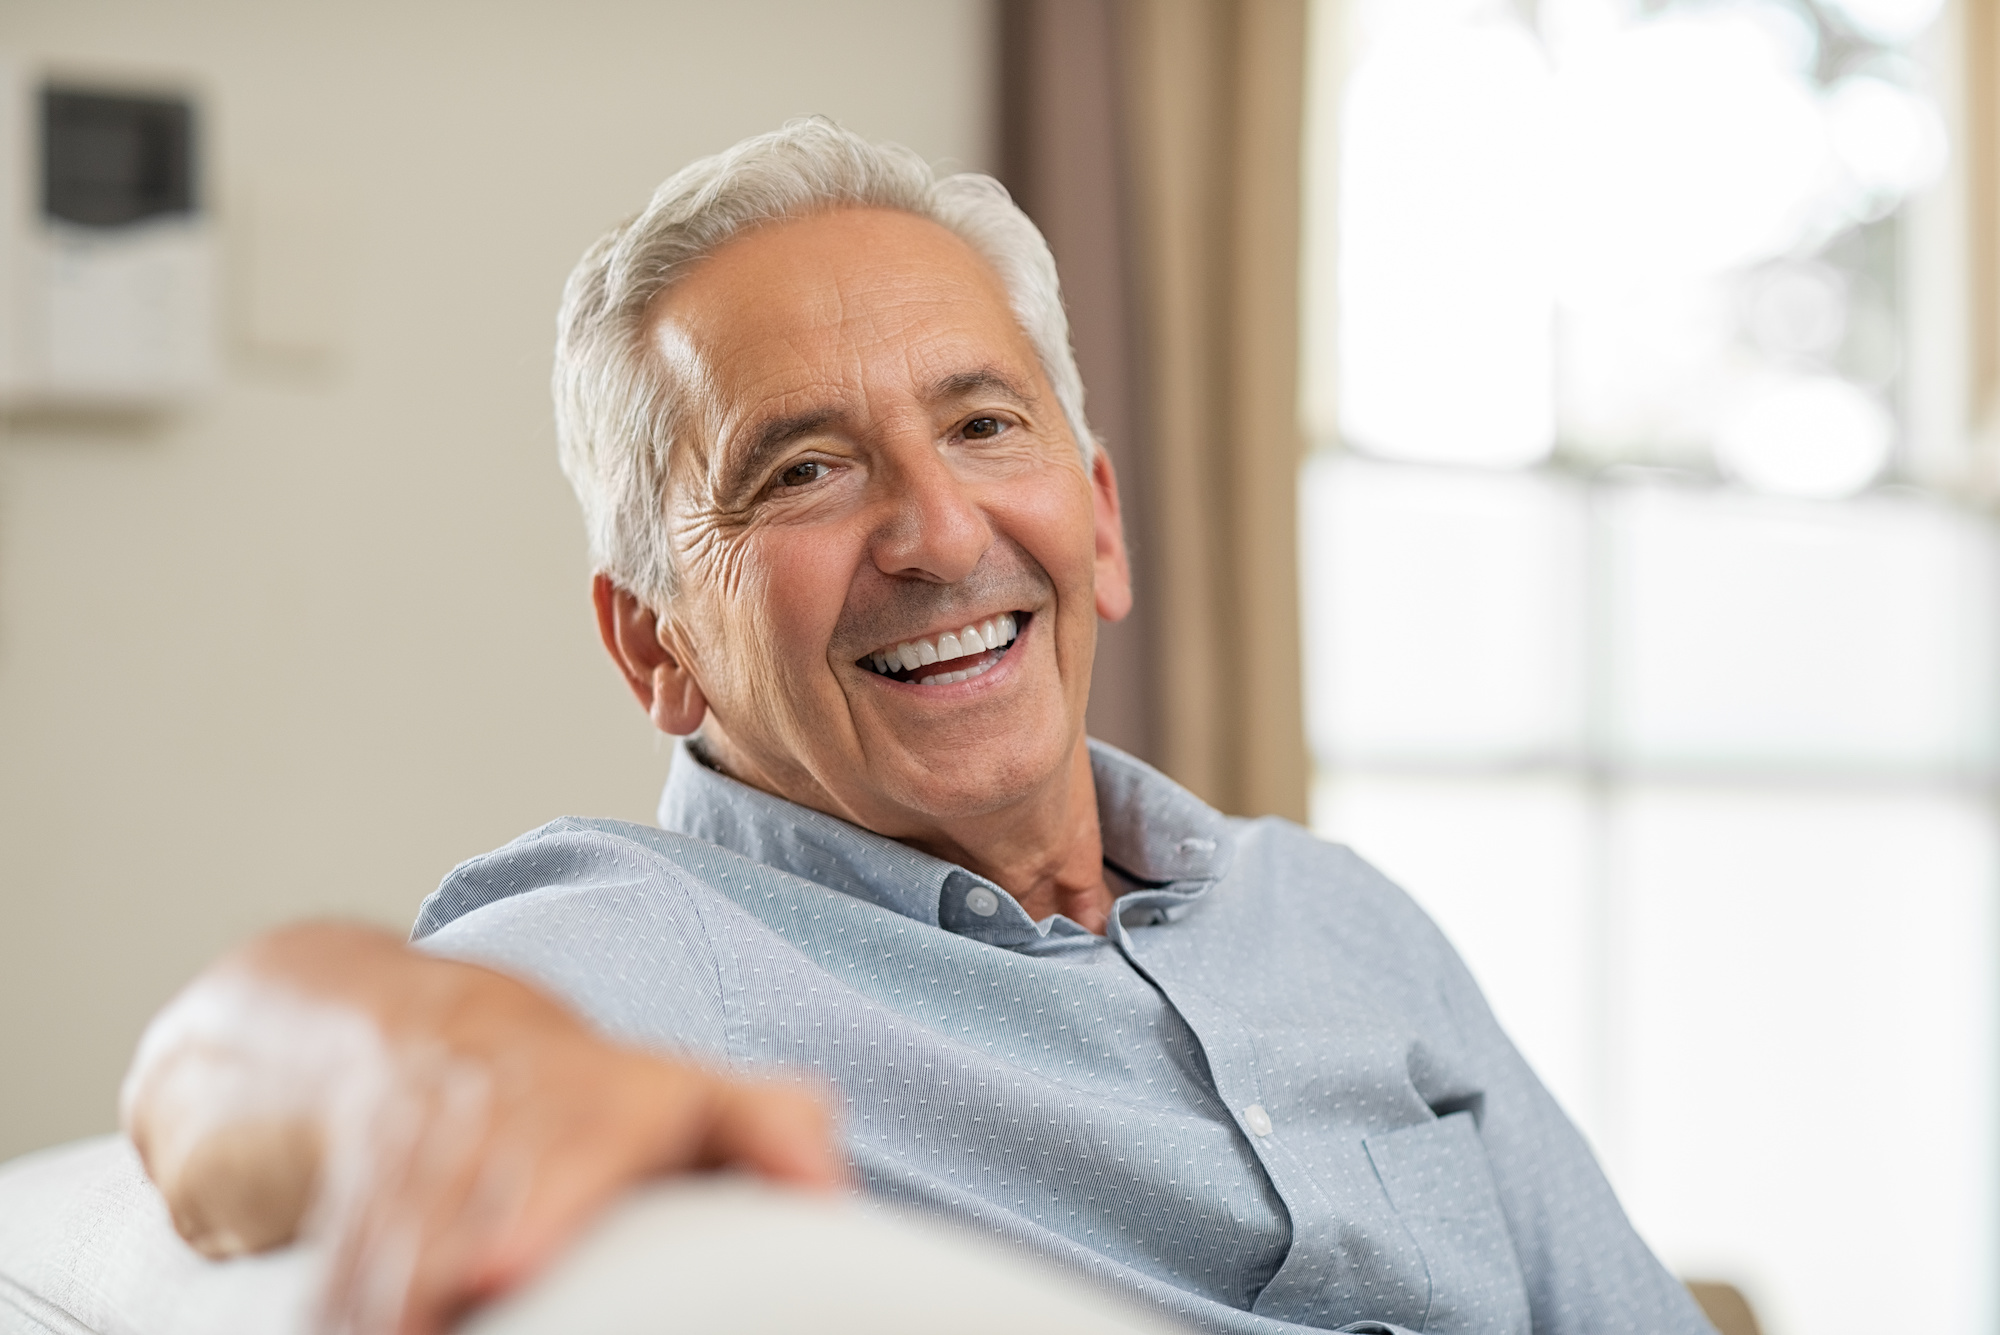 Dental Implants vs. Dentures: What's the Difference? Explaining the Top 5 Differences